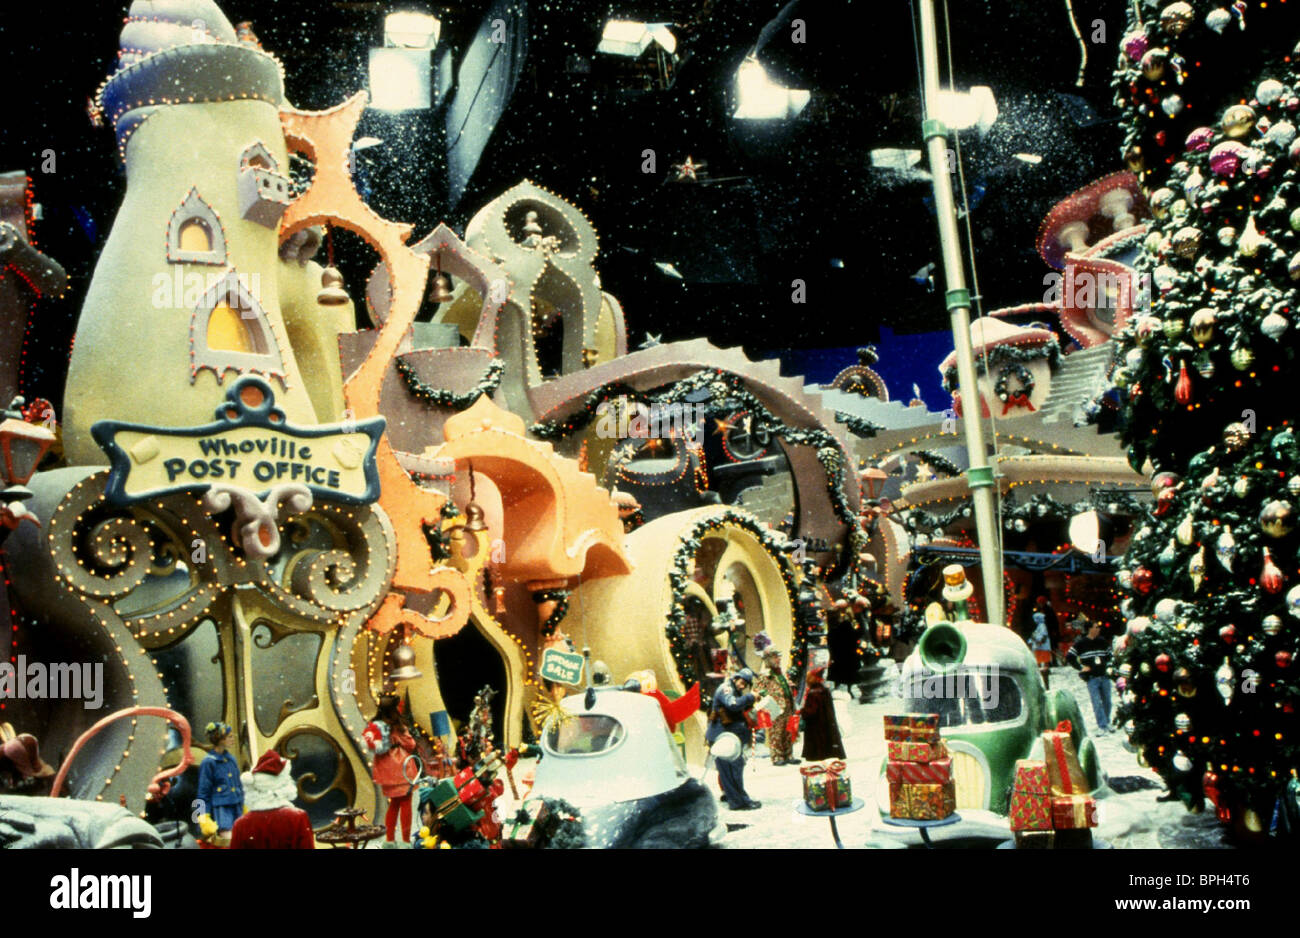 whoville stock photos whoville stock images alamy